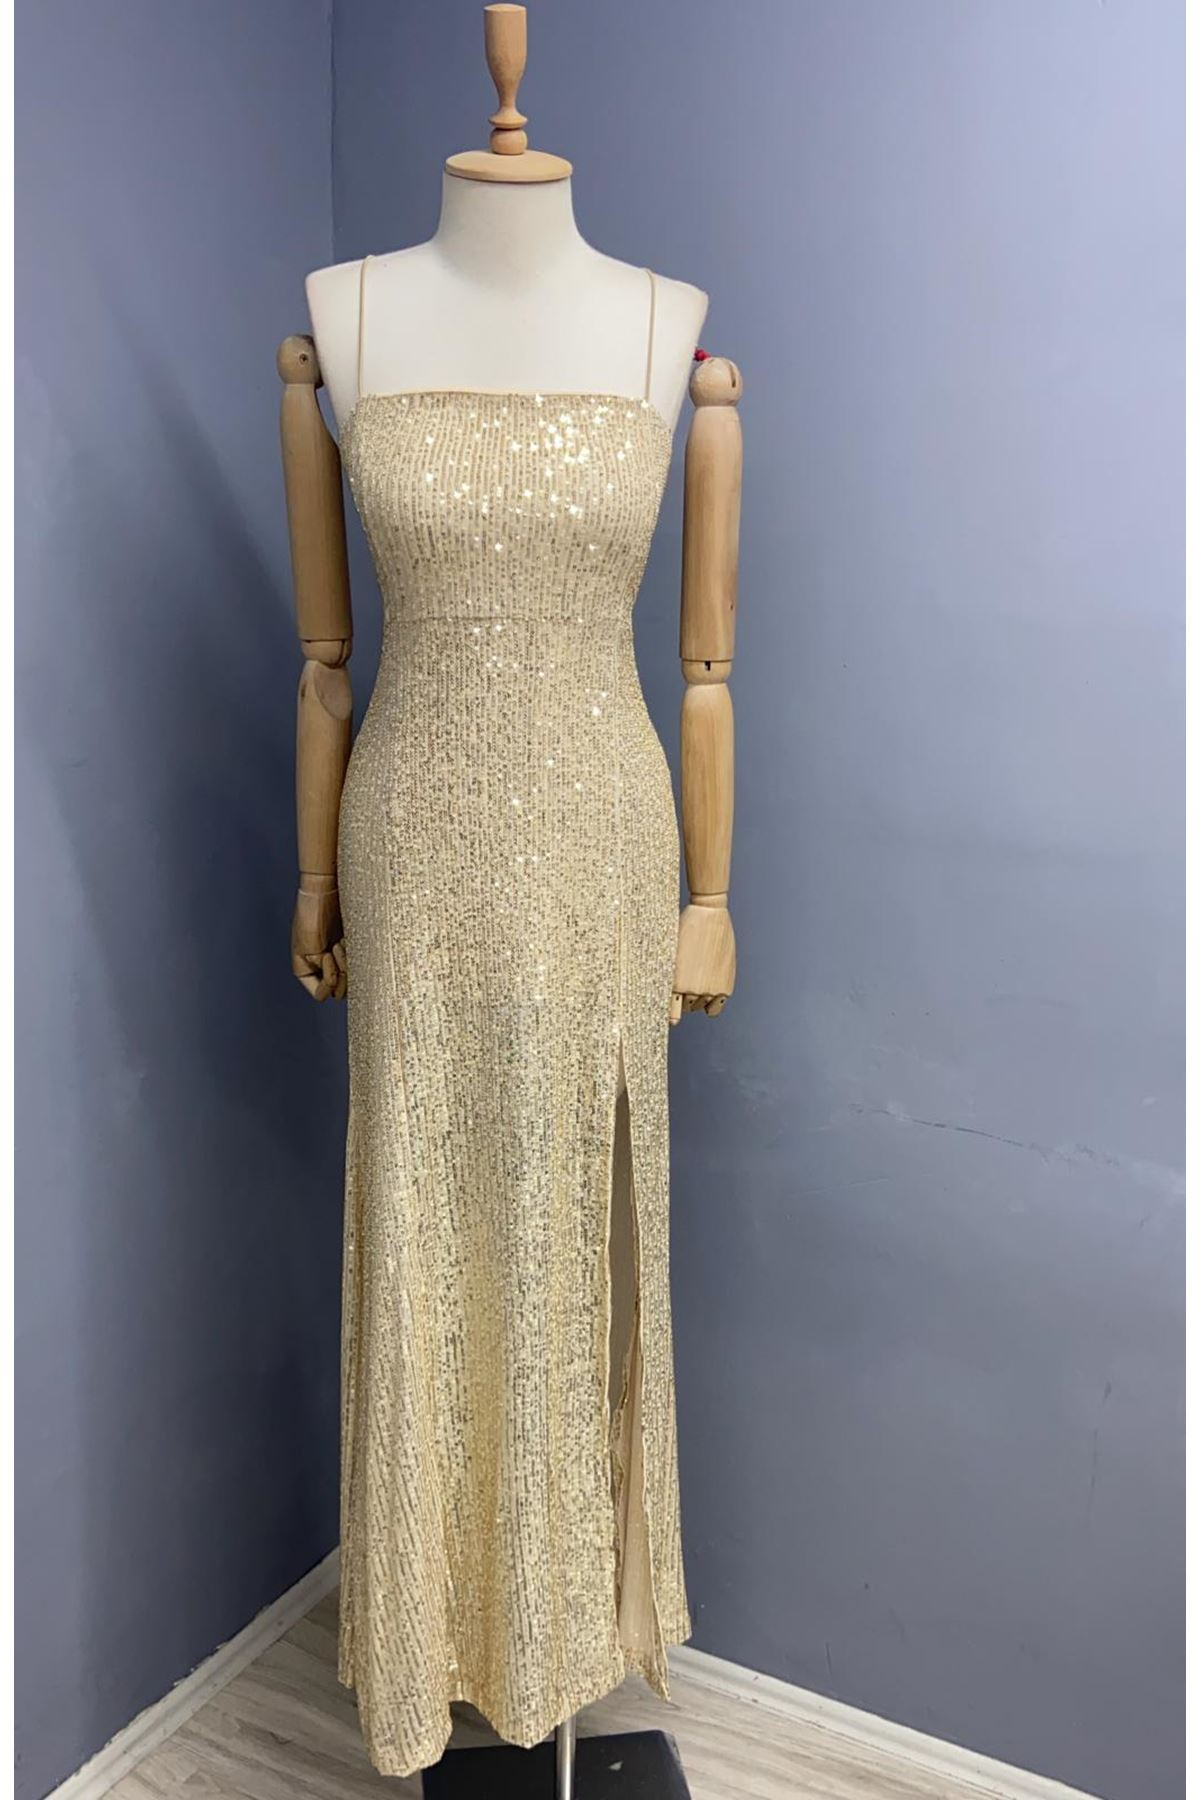 ZR Model Pul Payet Elbise - GOLD